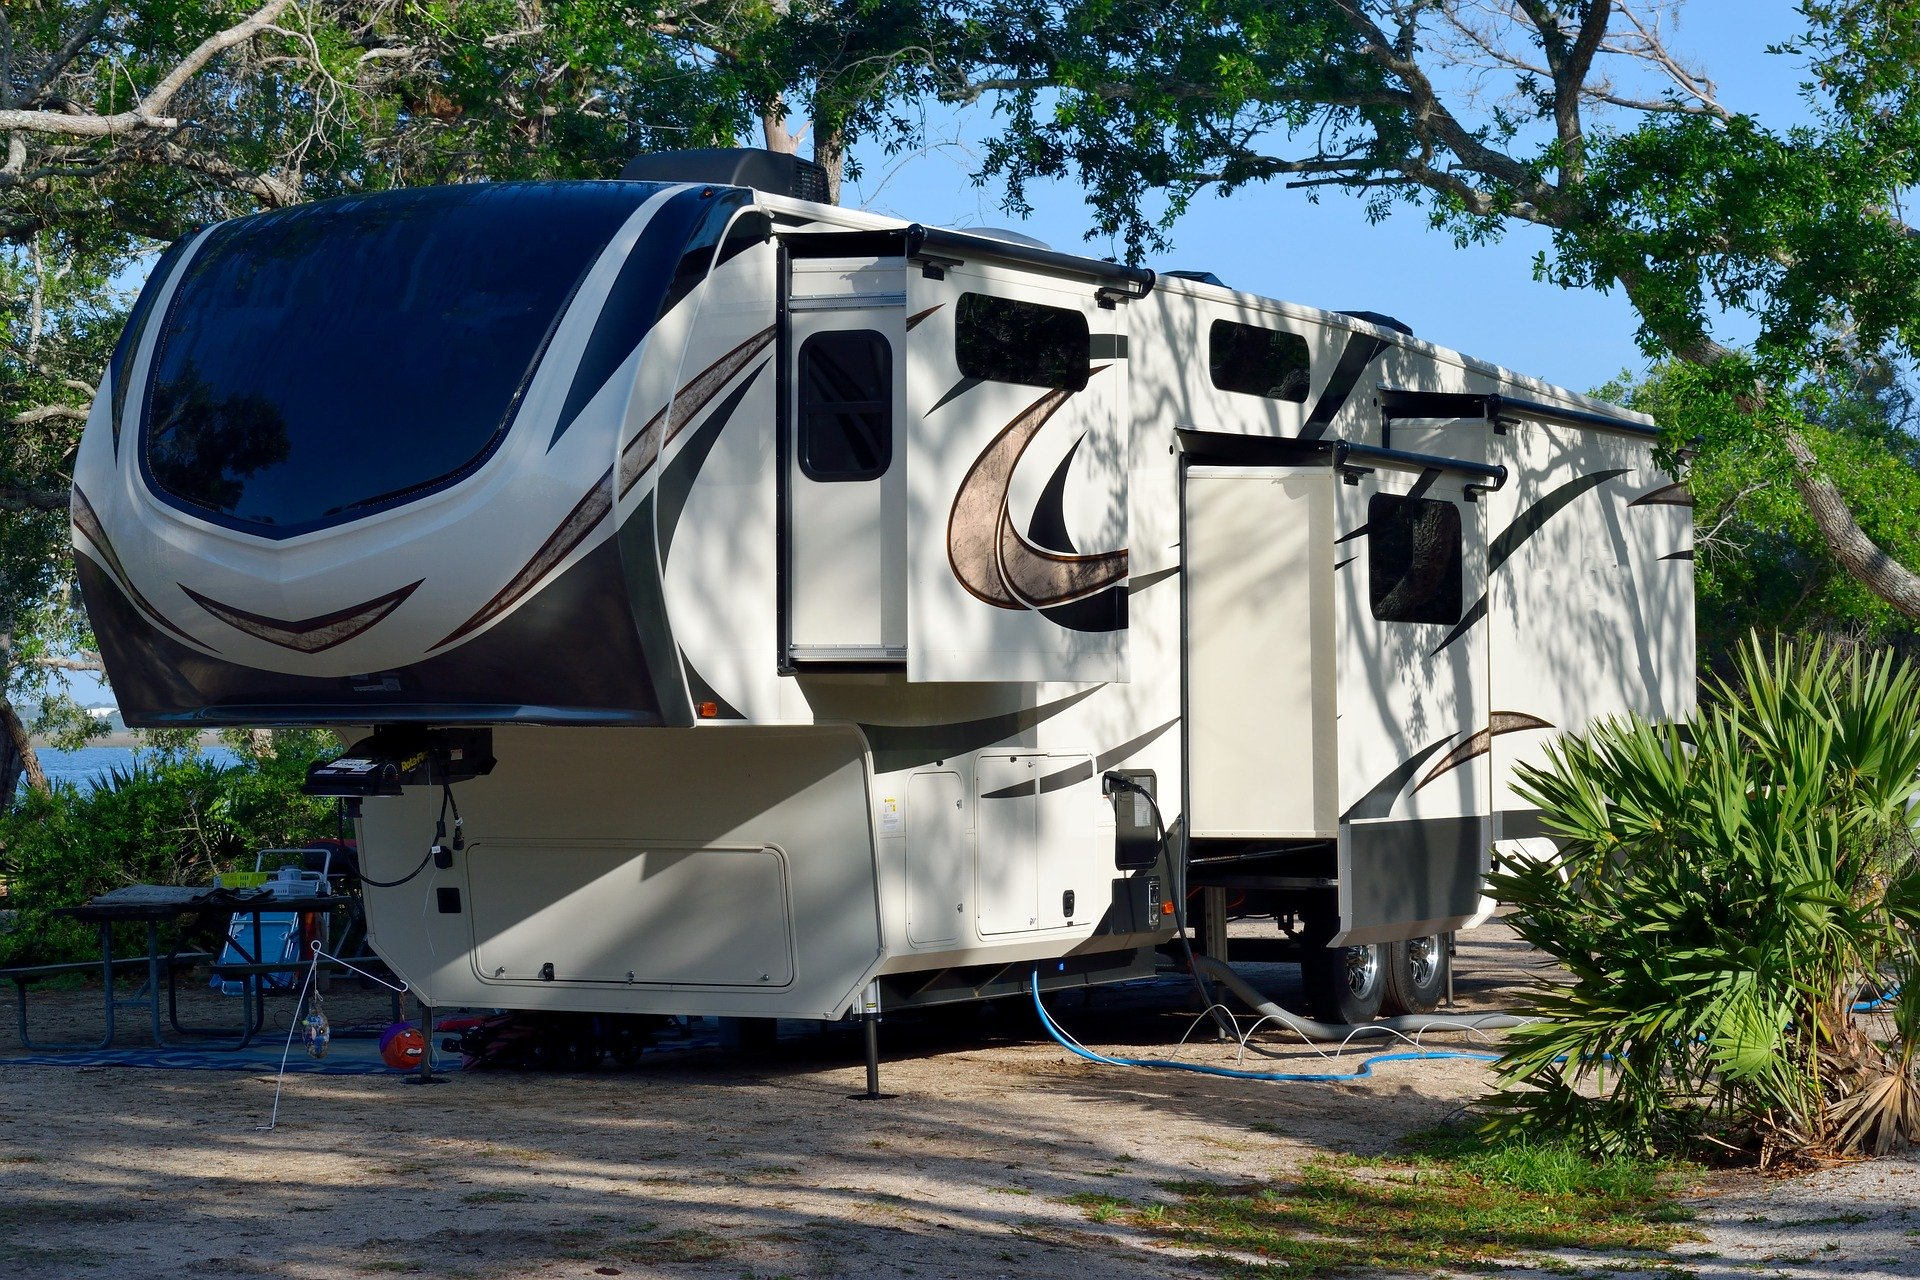 a fifth wheel trailer set up on a campsite